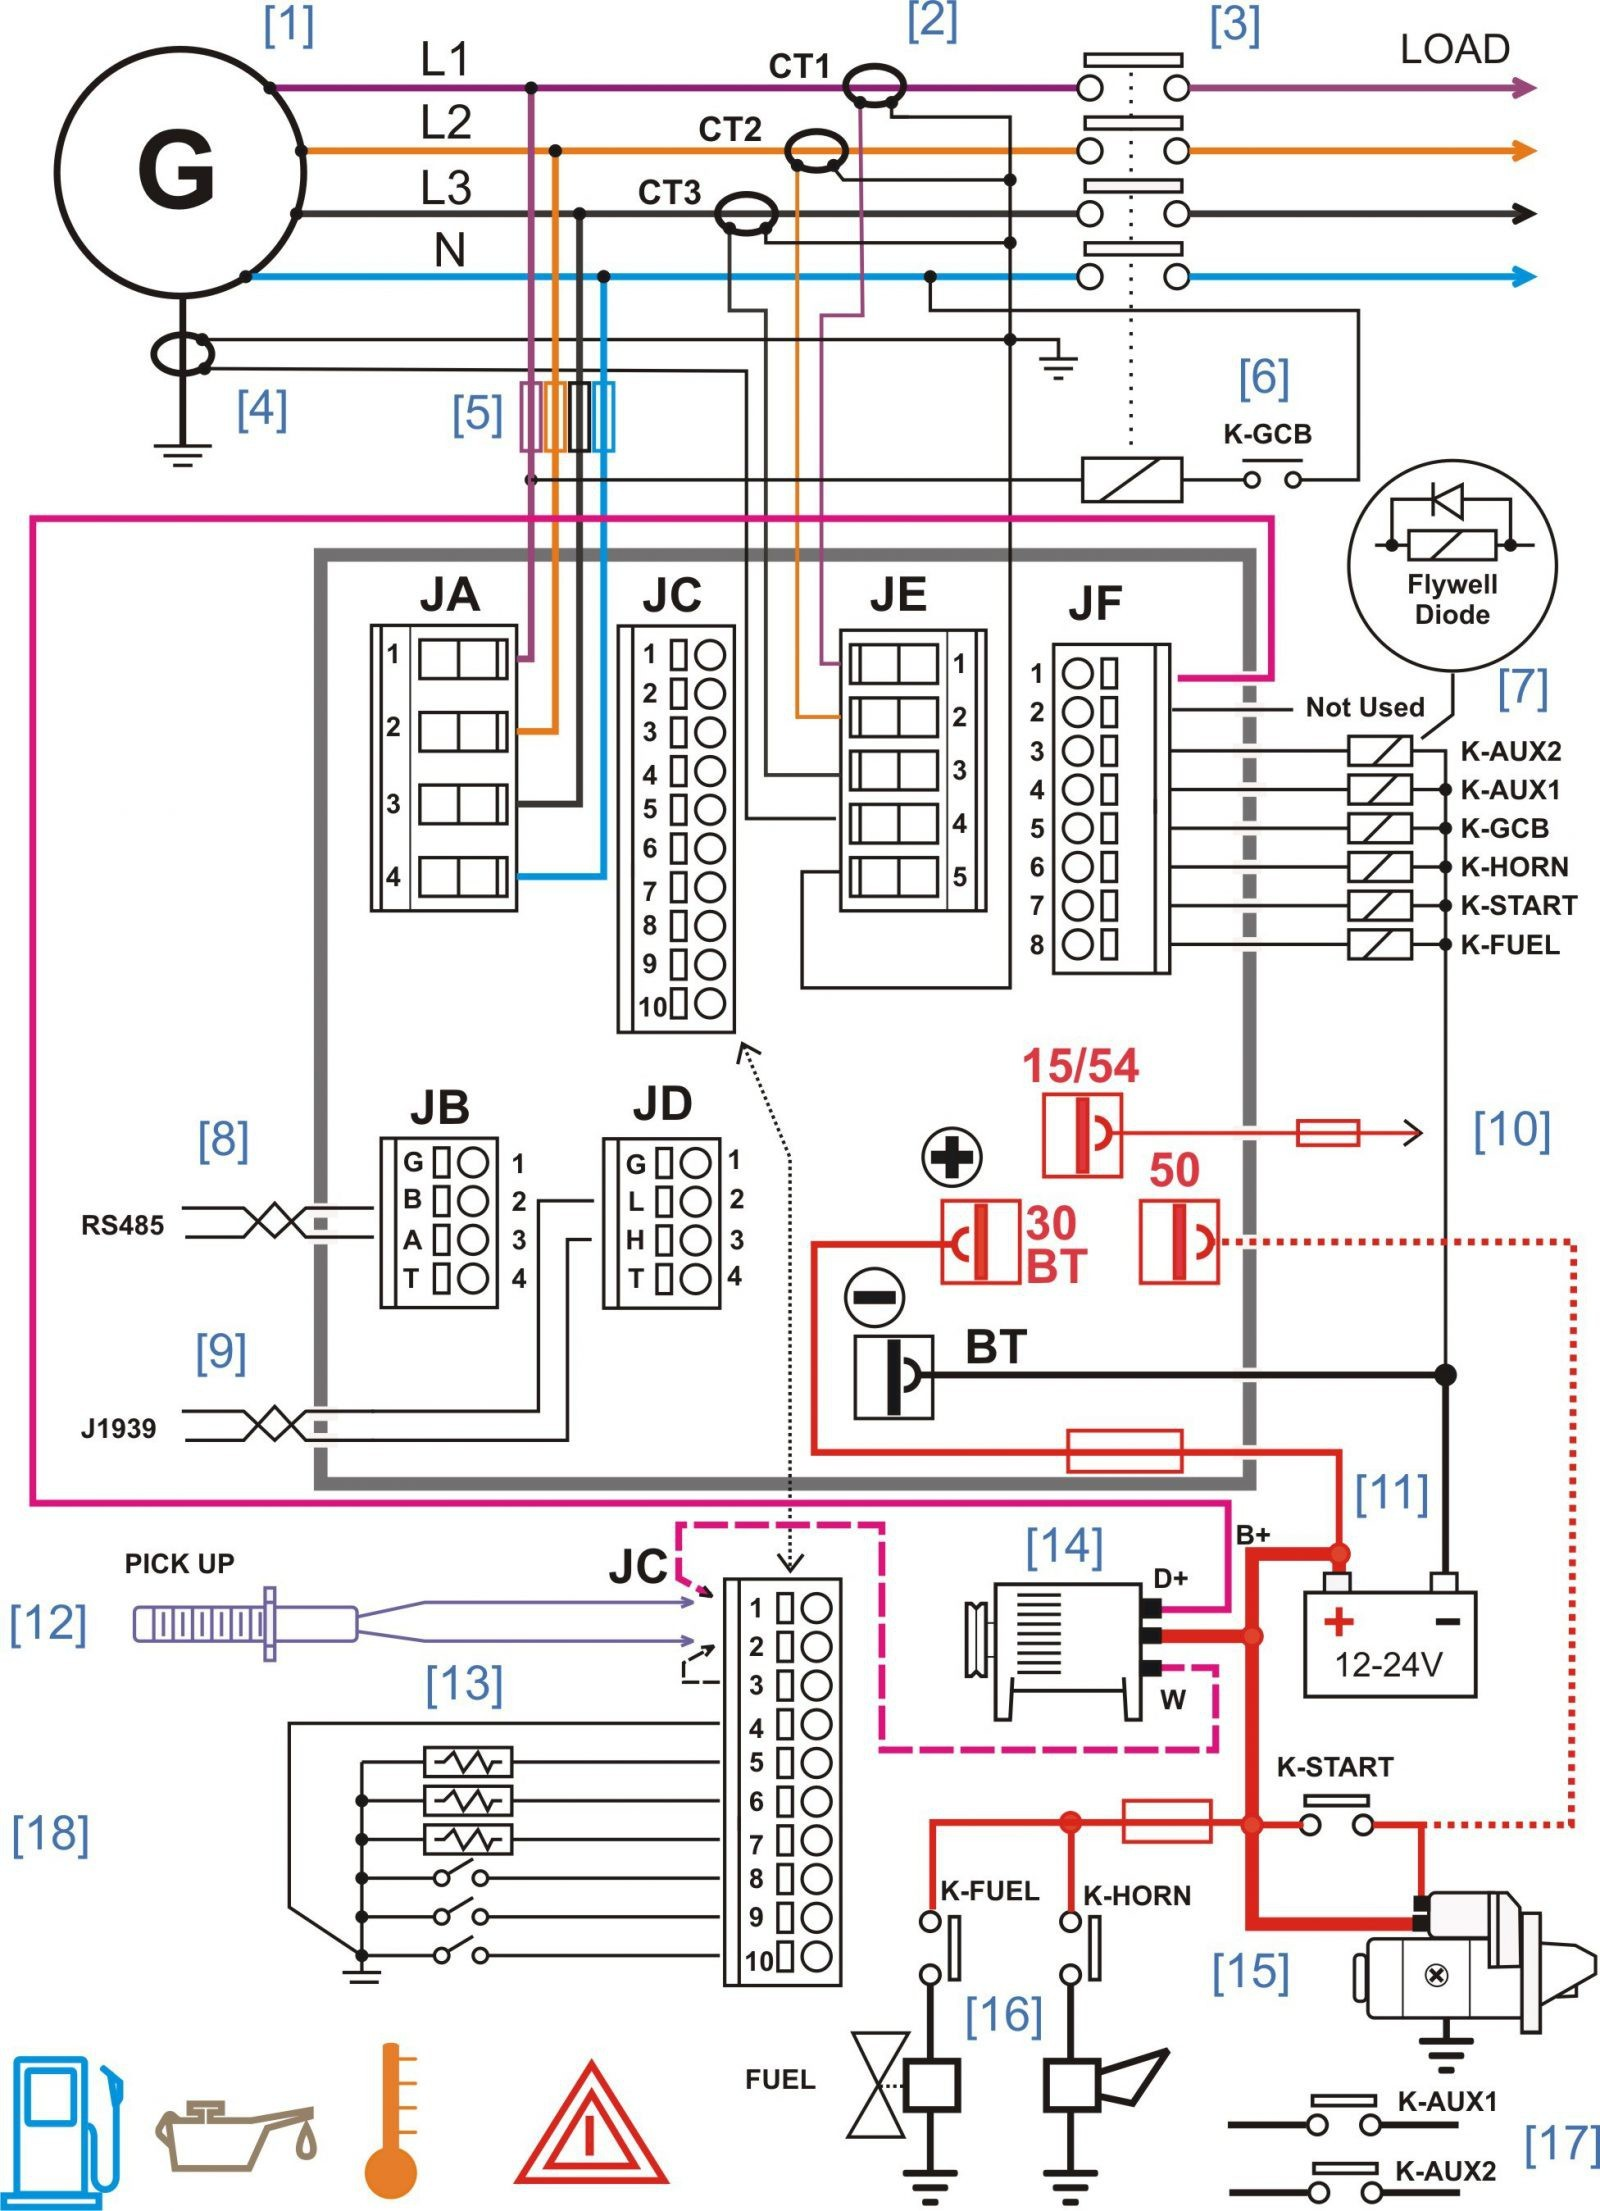 Car Stereo Wiring Diagram Lovely Car Stereo Wiring Diagram Diagram Of Car Stereo Wiring Diagram